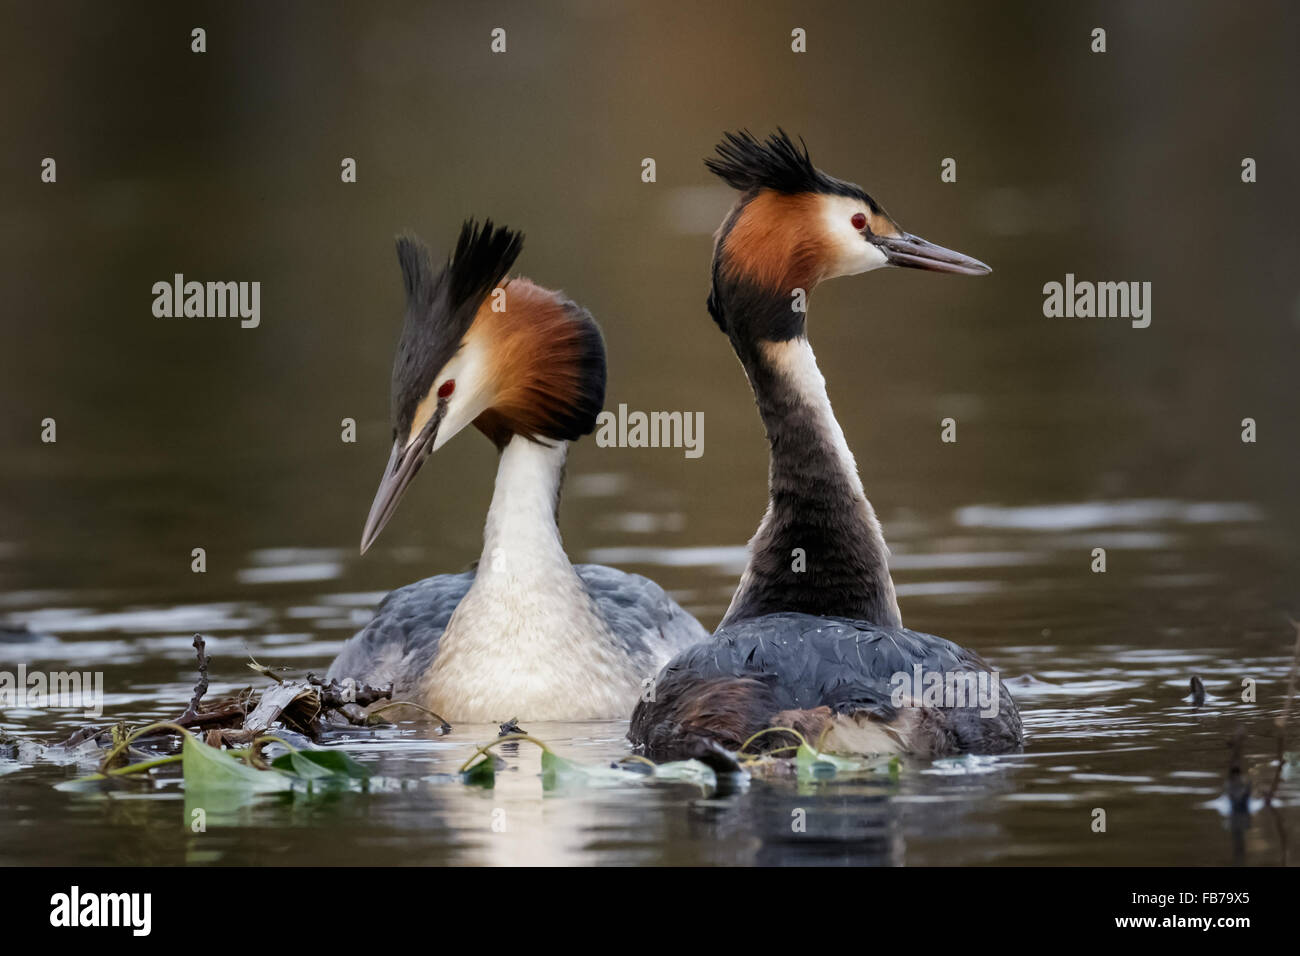 A pair of Great Crested Grebes (Podiceps cristatus) in a courtship display. - Stock Image